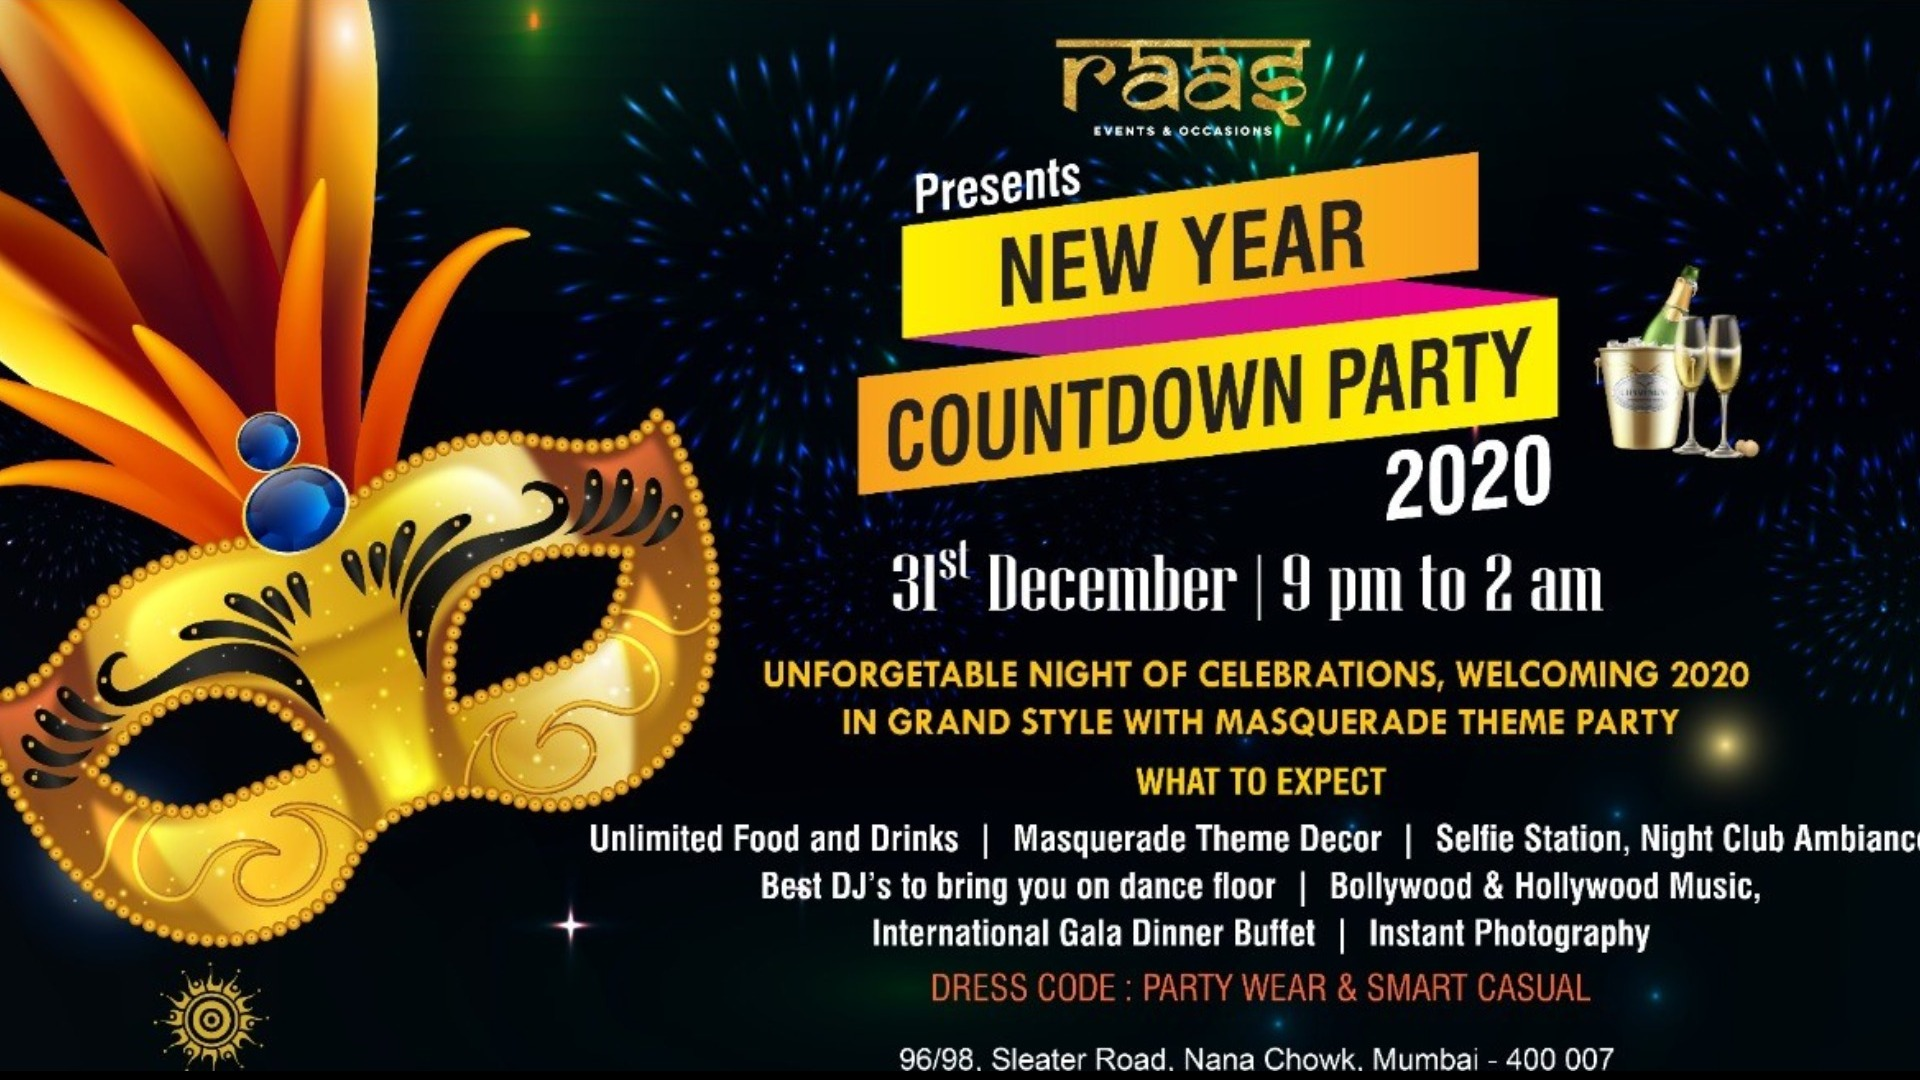 New Year Countdown Party 2020 Tickets By Krishna Palace Hotel Tuesday December 31 2019 Mumbai Event